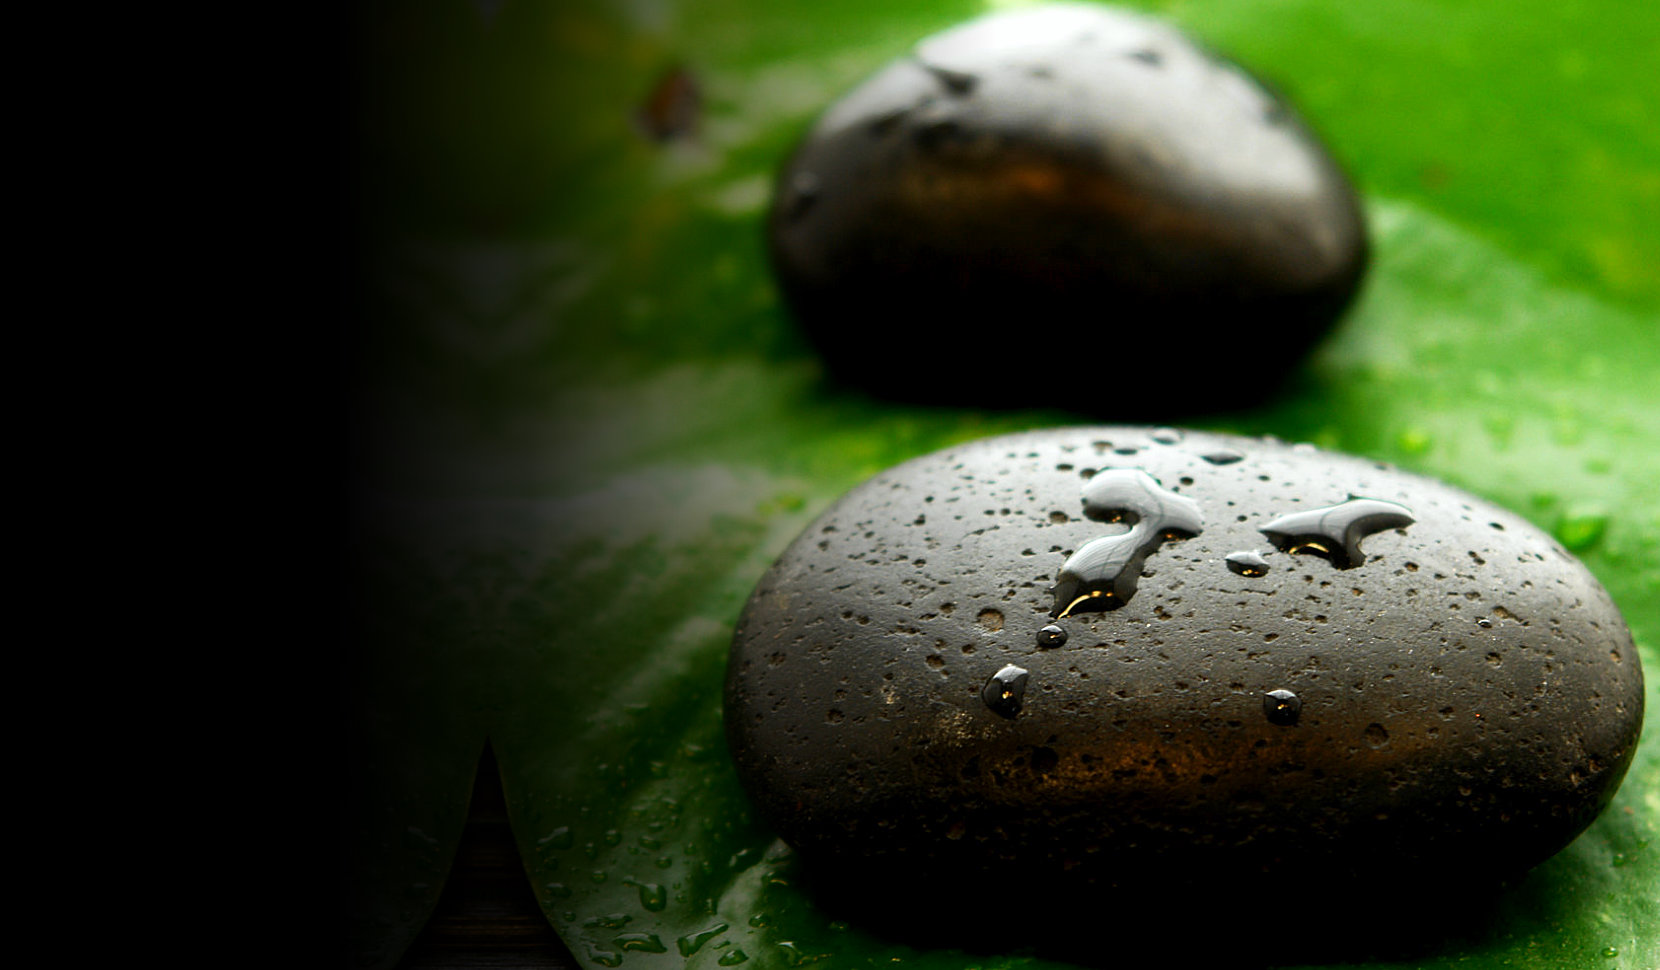 stones on top of a leaf